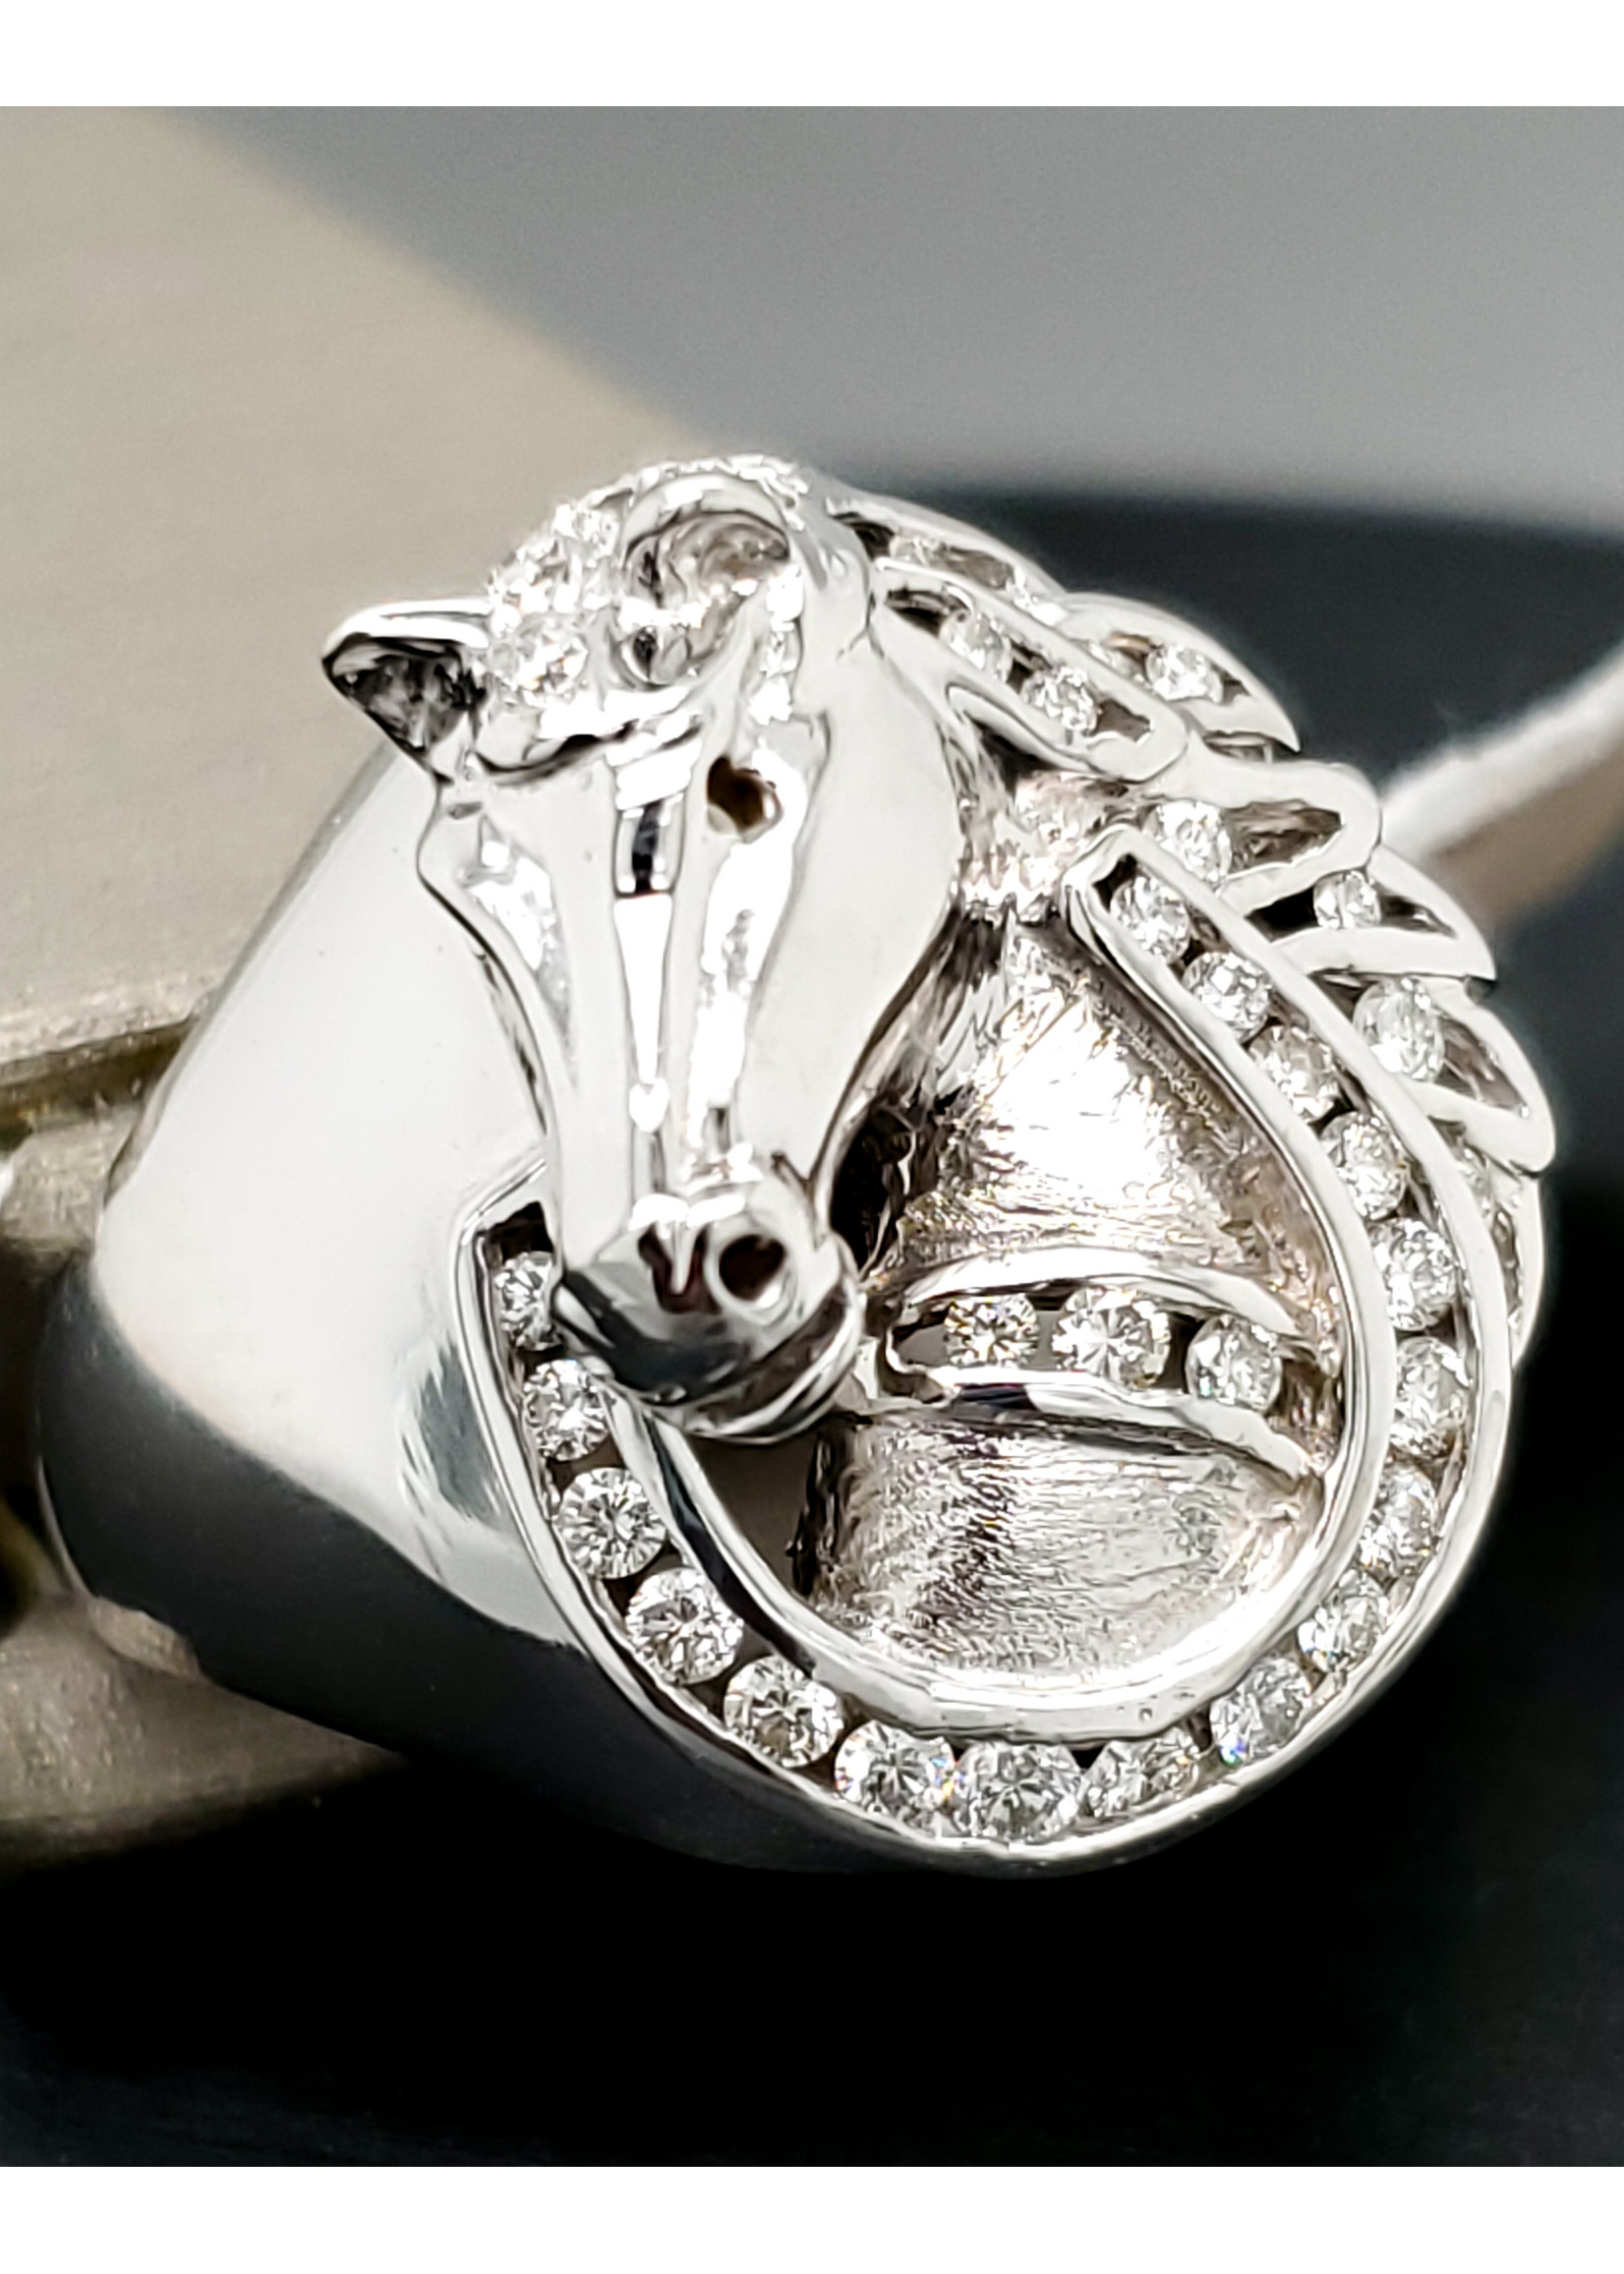 Hang Lau 18kt White Gold Horse Ring by Goldsmith Hang Lau